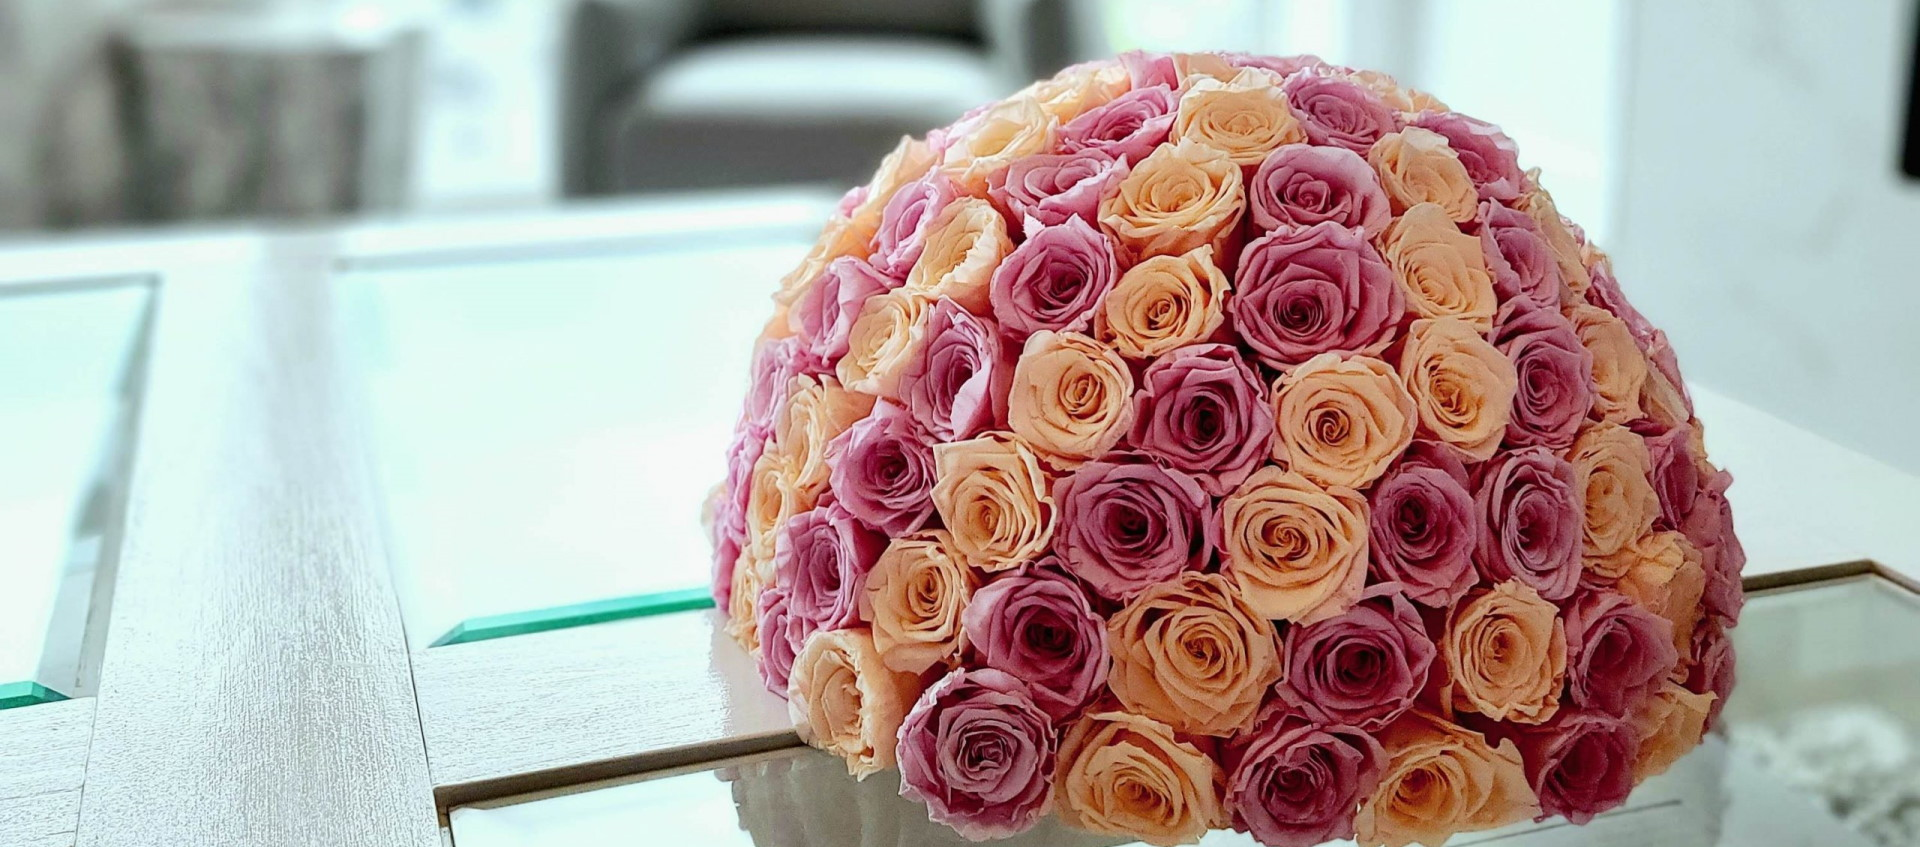 Why Eternal Roses Are Great Interior Decoration Idea? 7